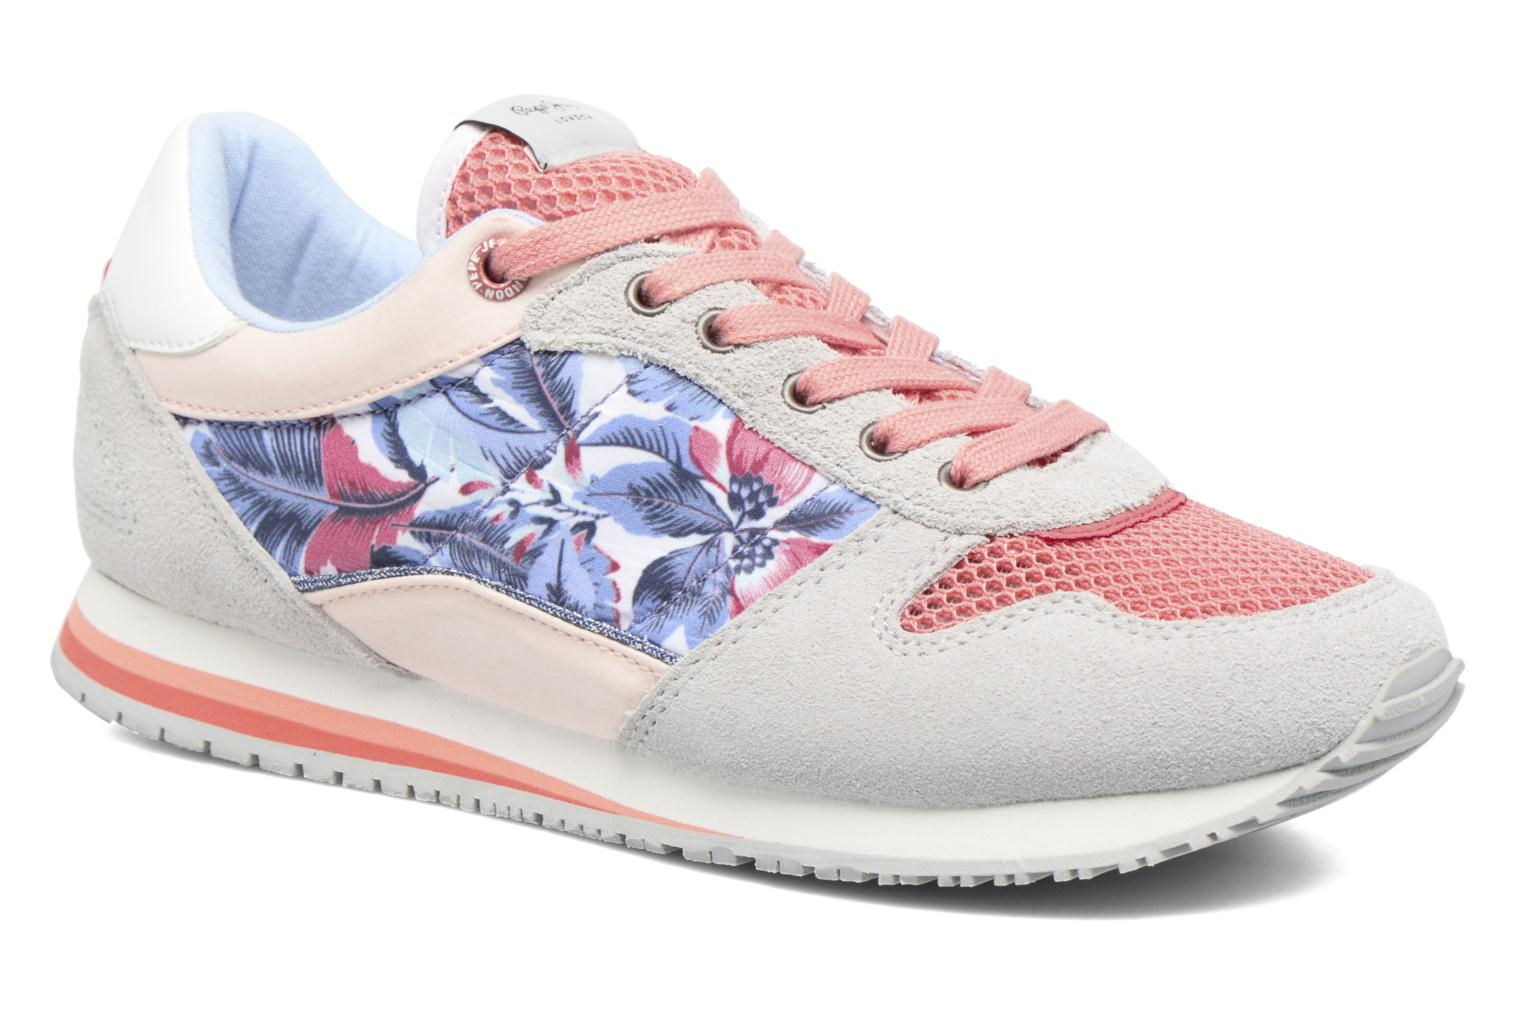 sneakers-sydney-by-pepe-jeans